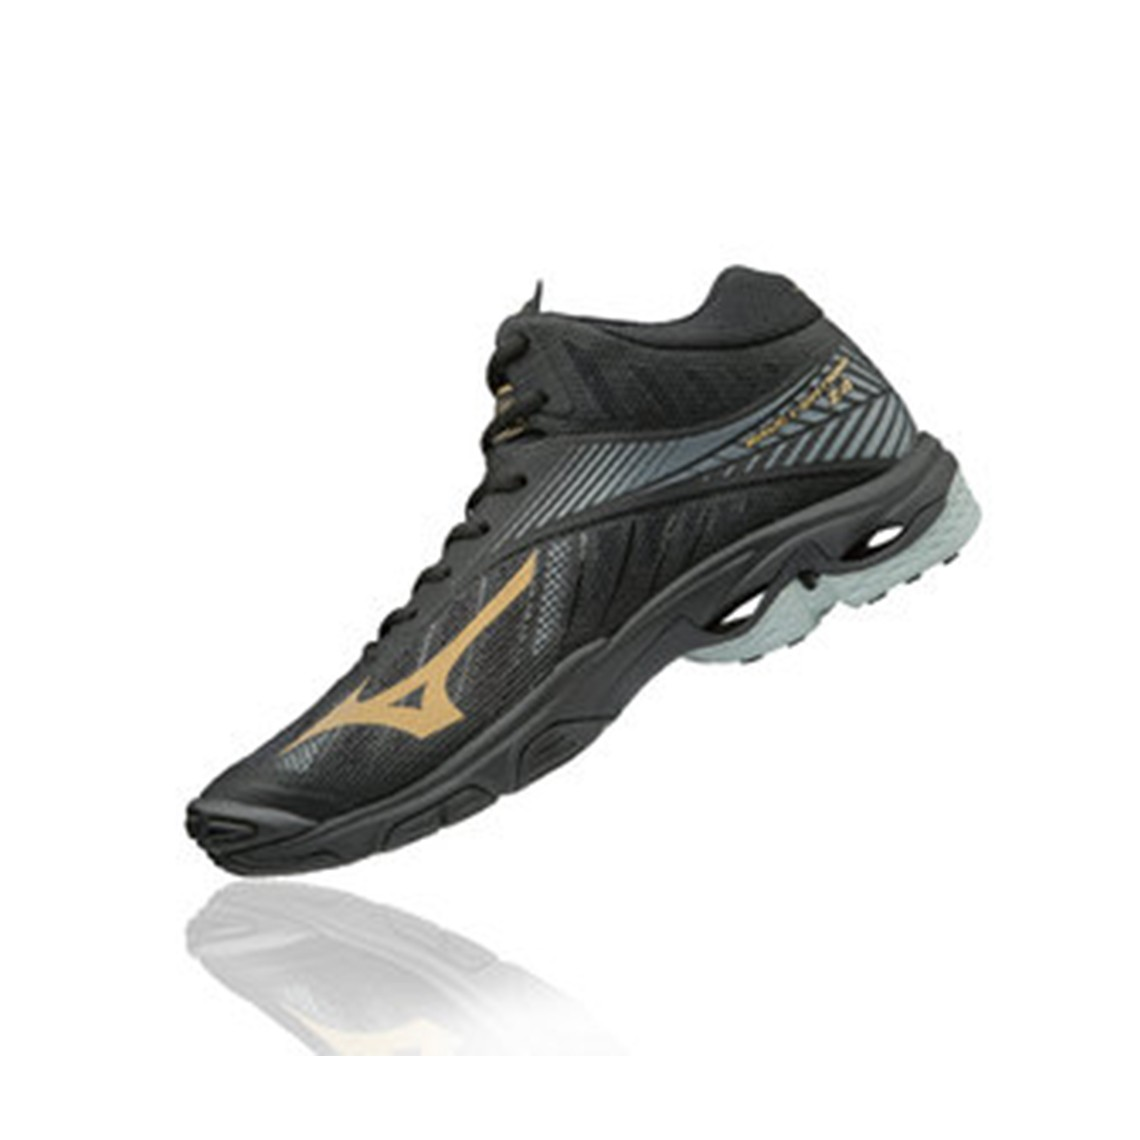 MIZUNO SEPATU VOLLEY BADMINTON V1GA180550 WAVE LIGHTNING Z4 MID - BLACK  GOLD 10121C DARK SHADOW 4e3d934123